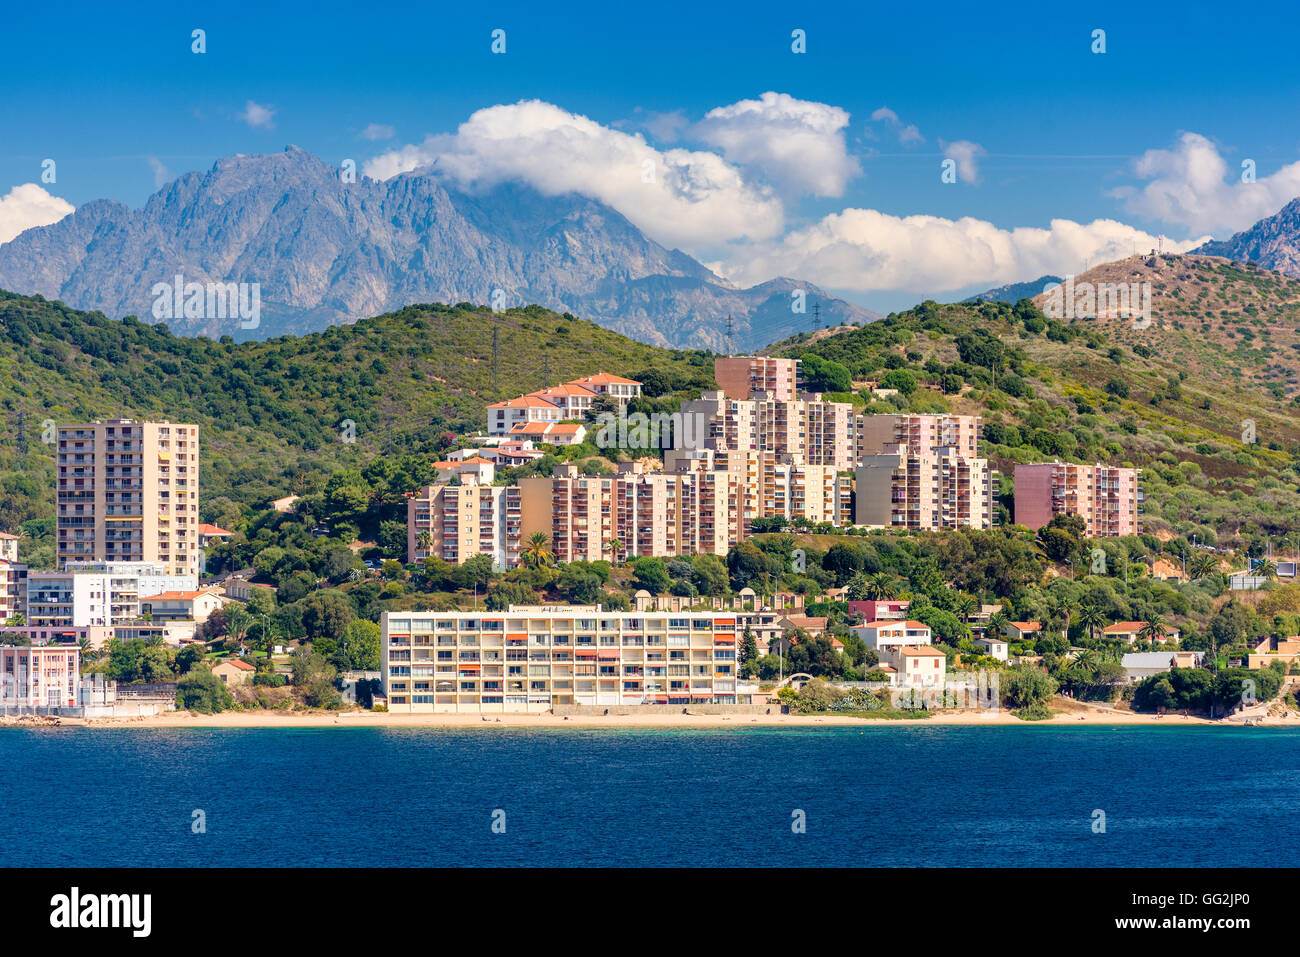 Corsica, France coastal resorts on the Mediterranean. - Stock Image